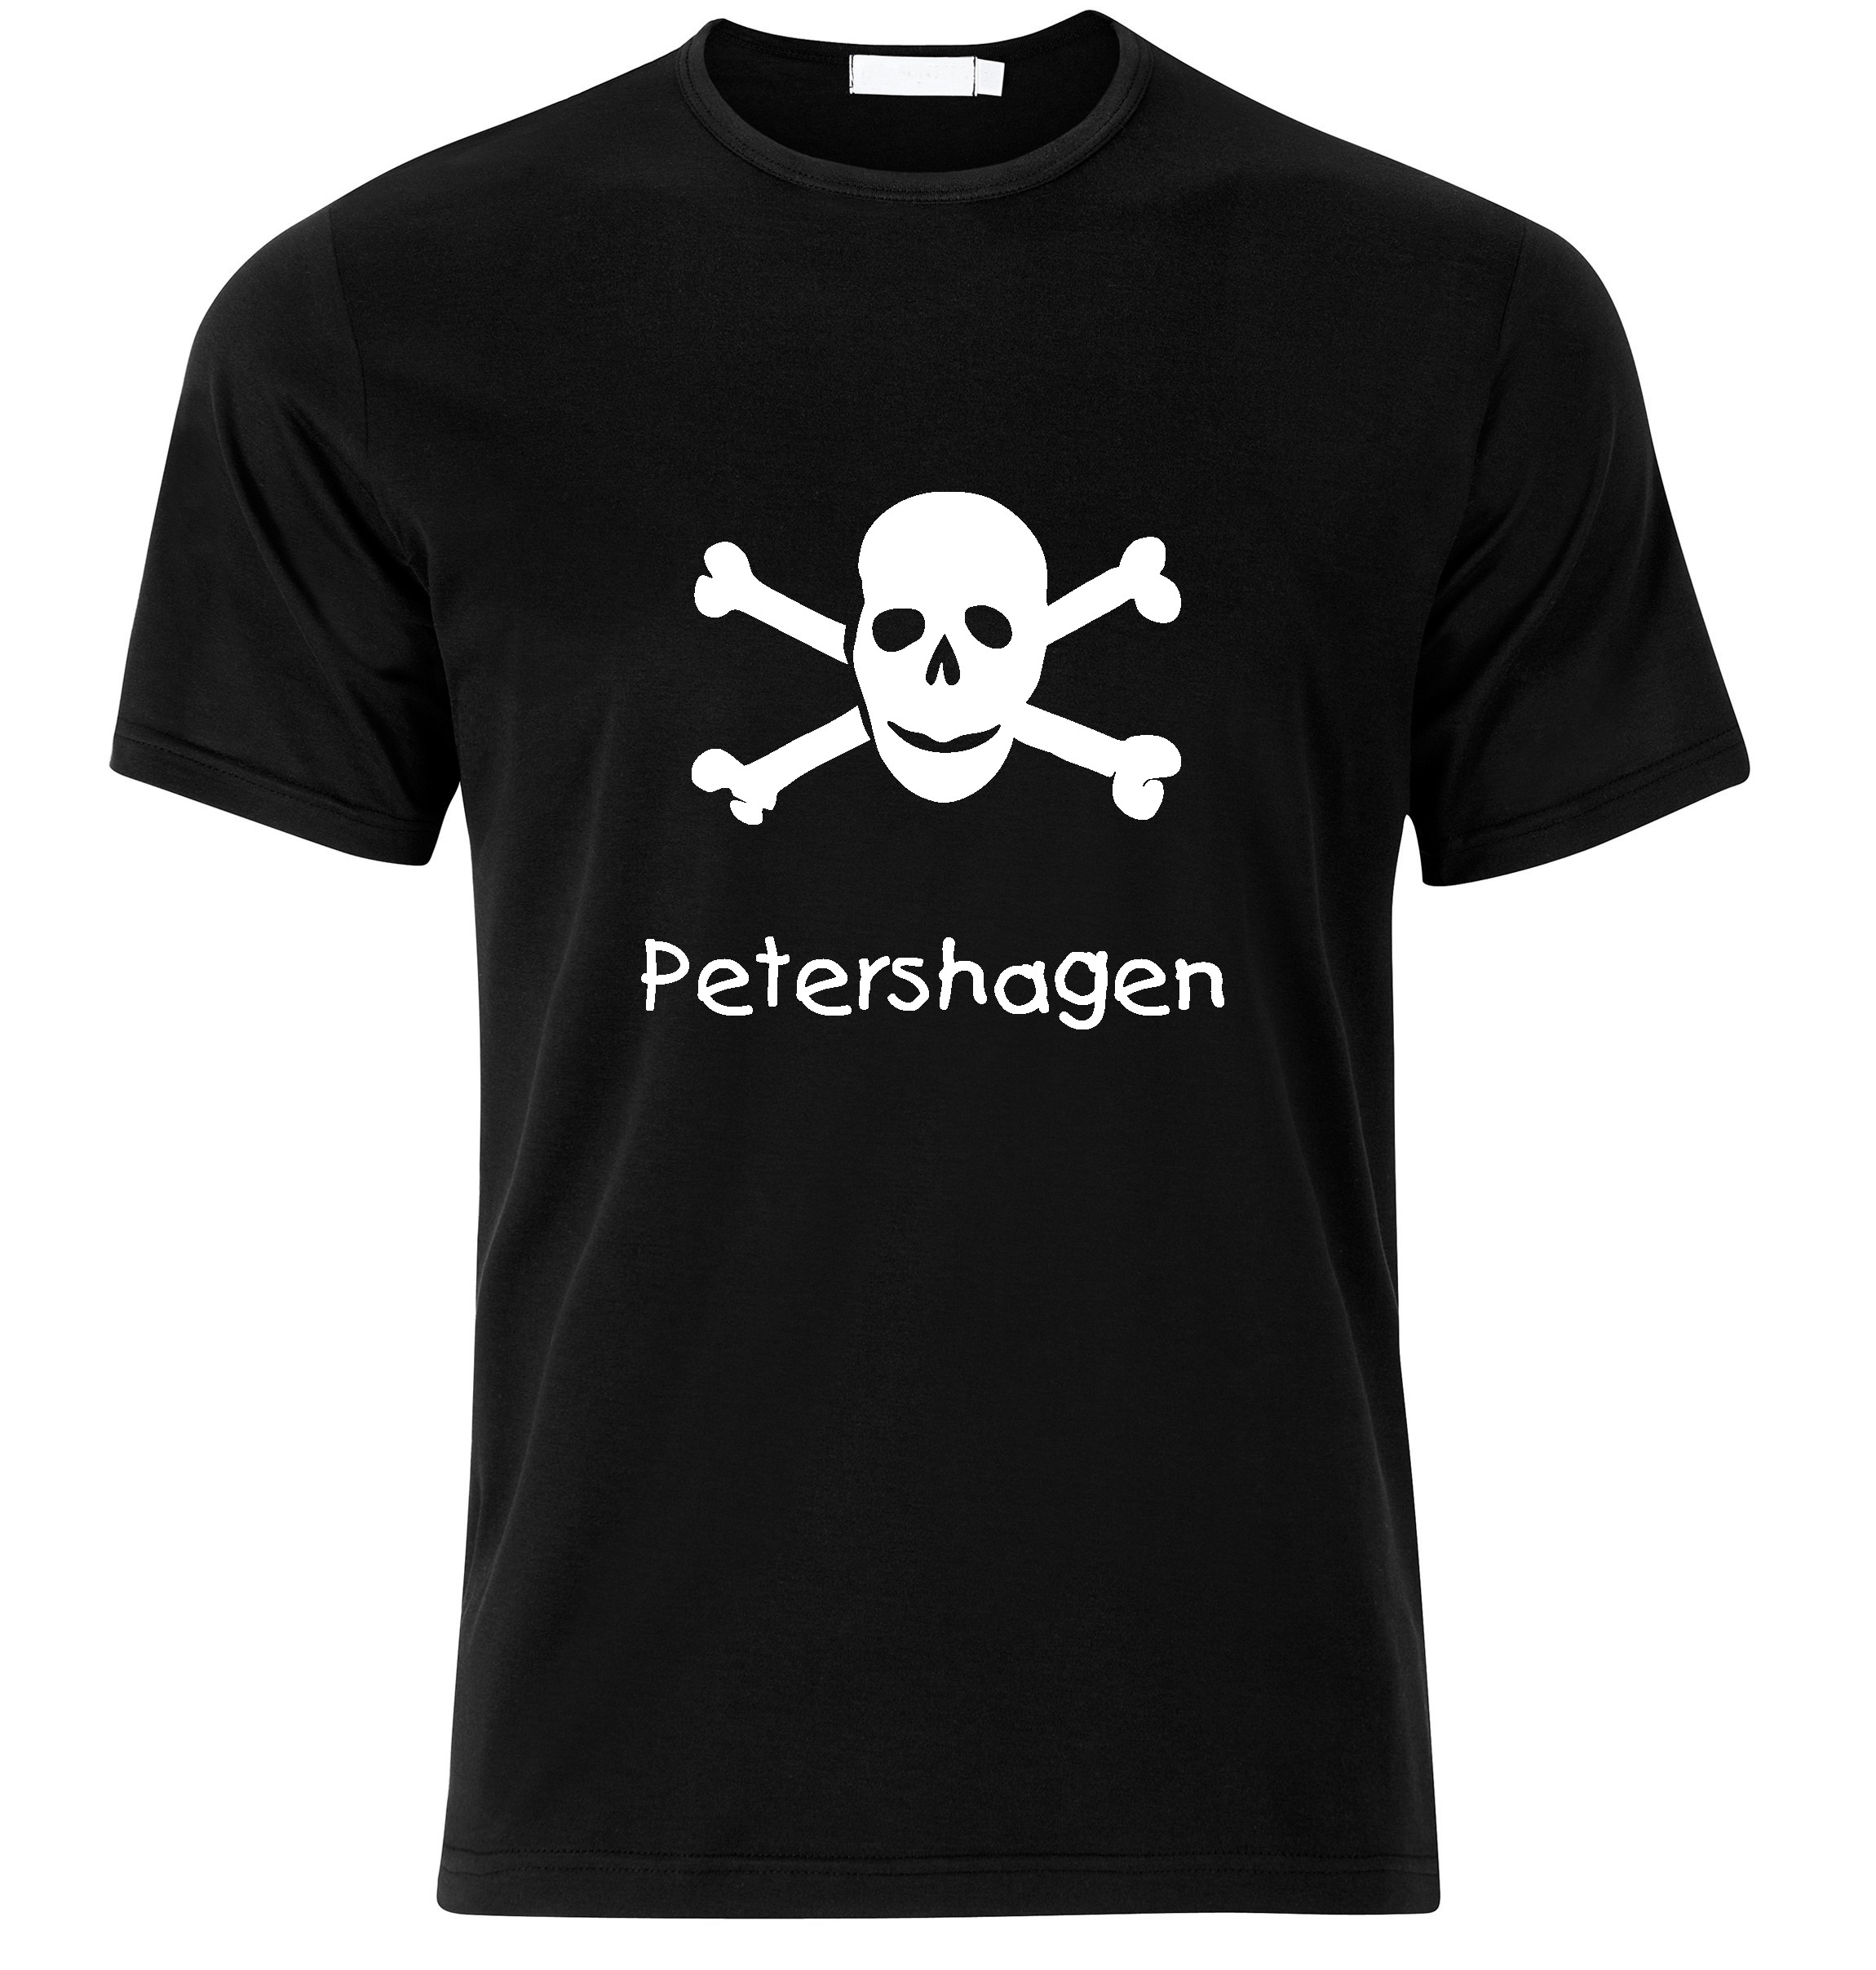 T-Shirt Petershagen Jolly Roger, Totenkopf